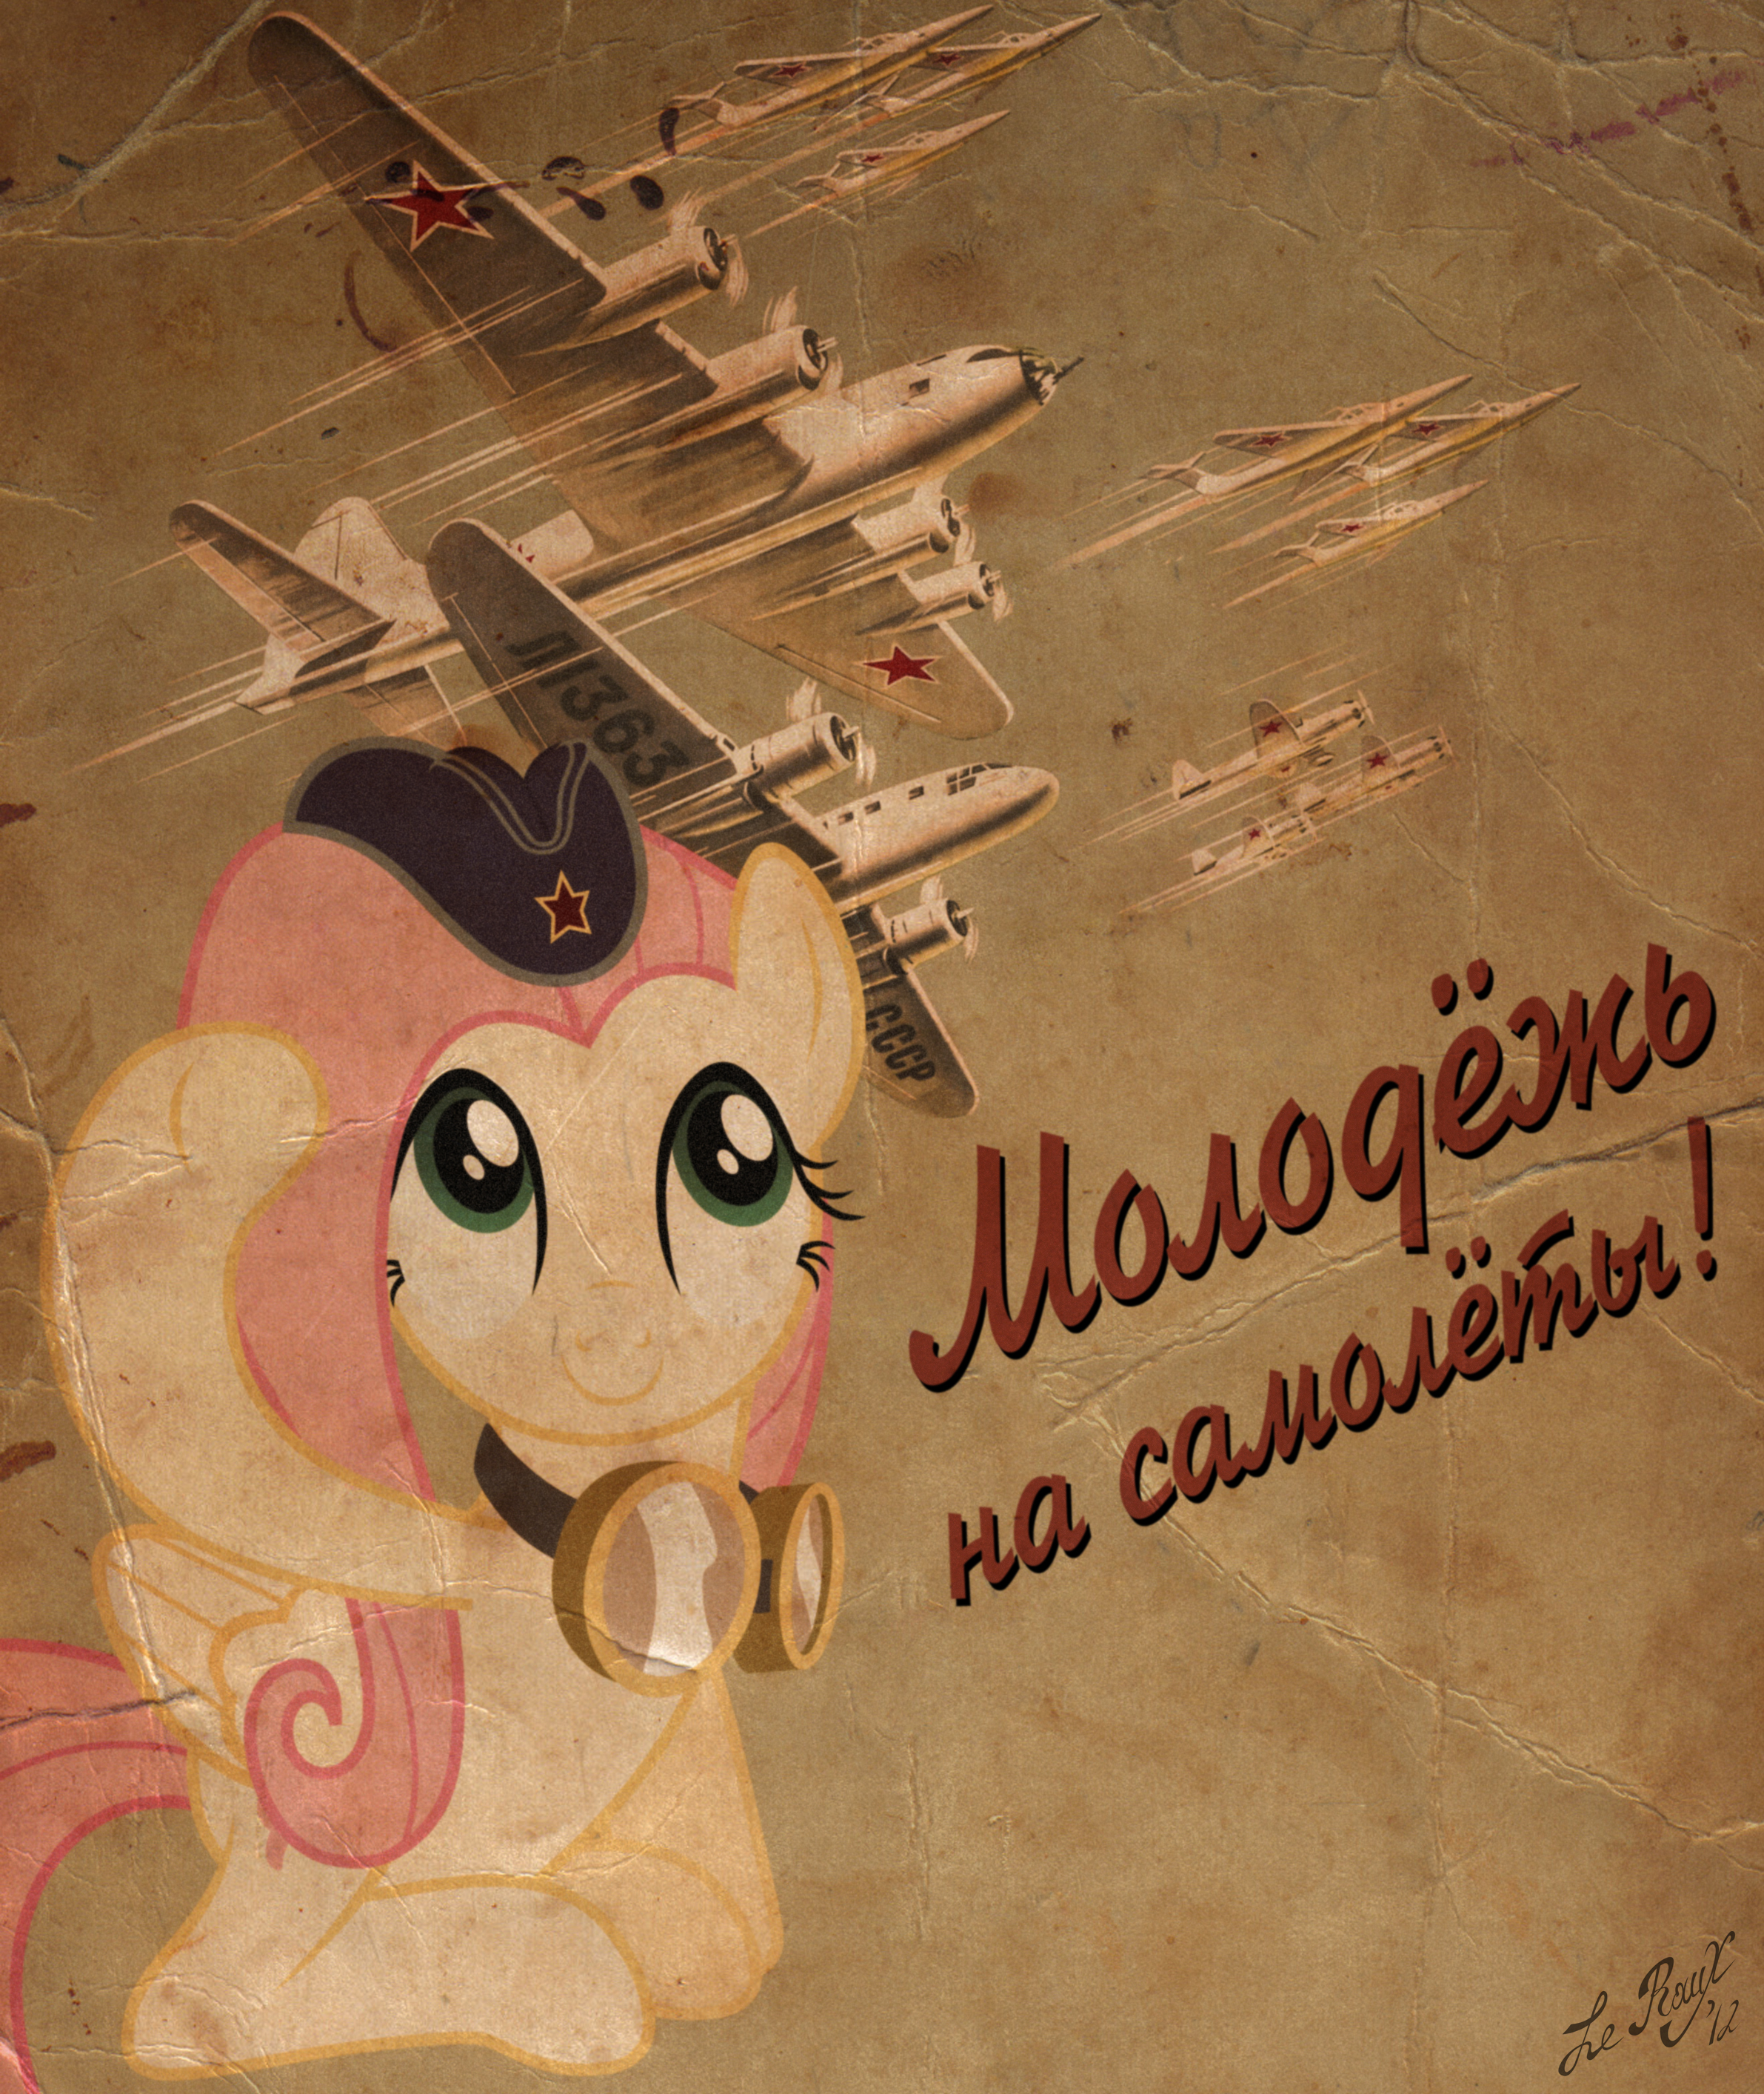 e621 communism equine eyewear female feral field_cap fluttershy_(mlp) friendship_is_magic goggles horse lerauxart mammal my_little_pony pegasus politics pony poster propaganda red_star soviet ussr wings